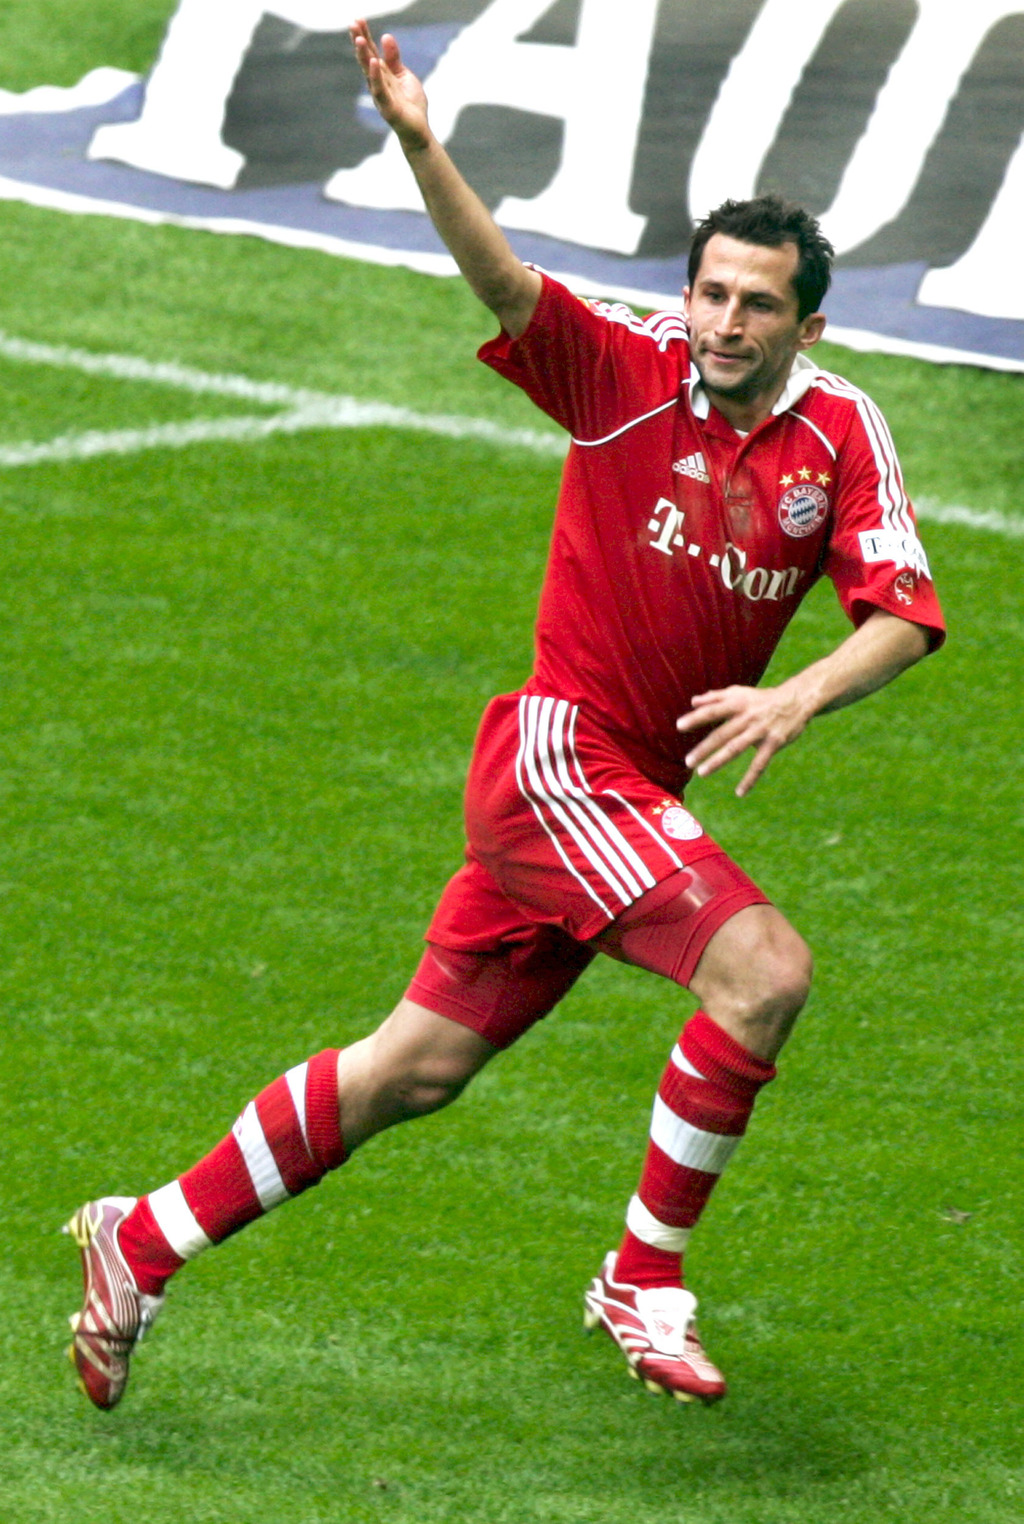 In This March 31, 2007 file photo Hasan Salihamidzic of Munich cheers while scoring  during the Bundesliga soccer match between  FC Bayern Munich and ...